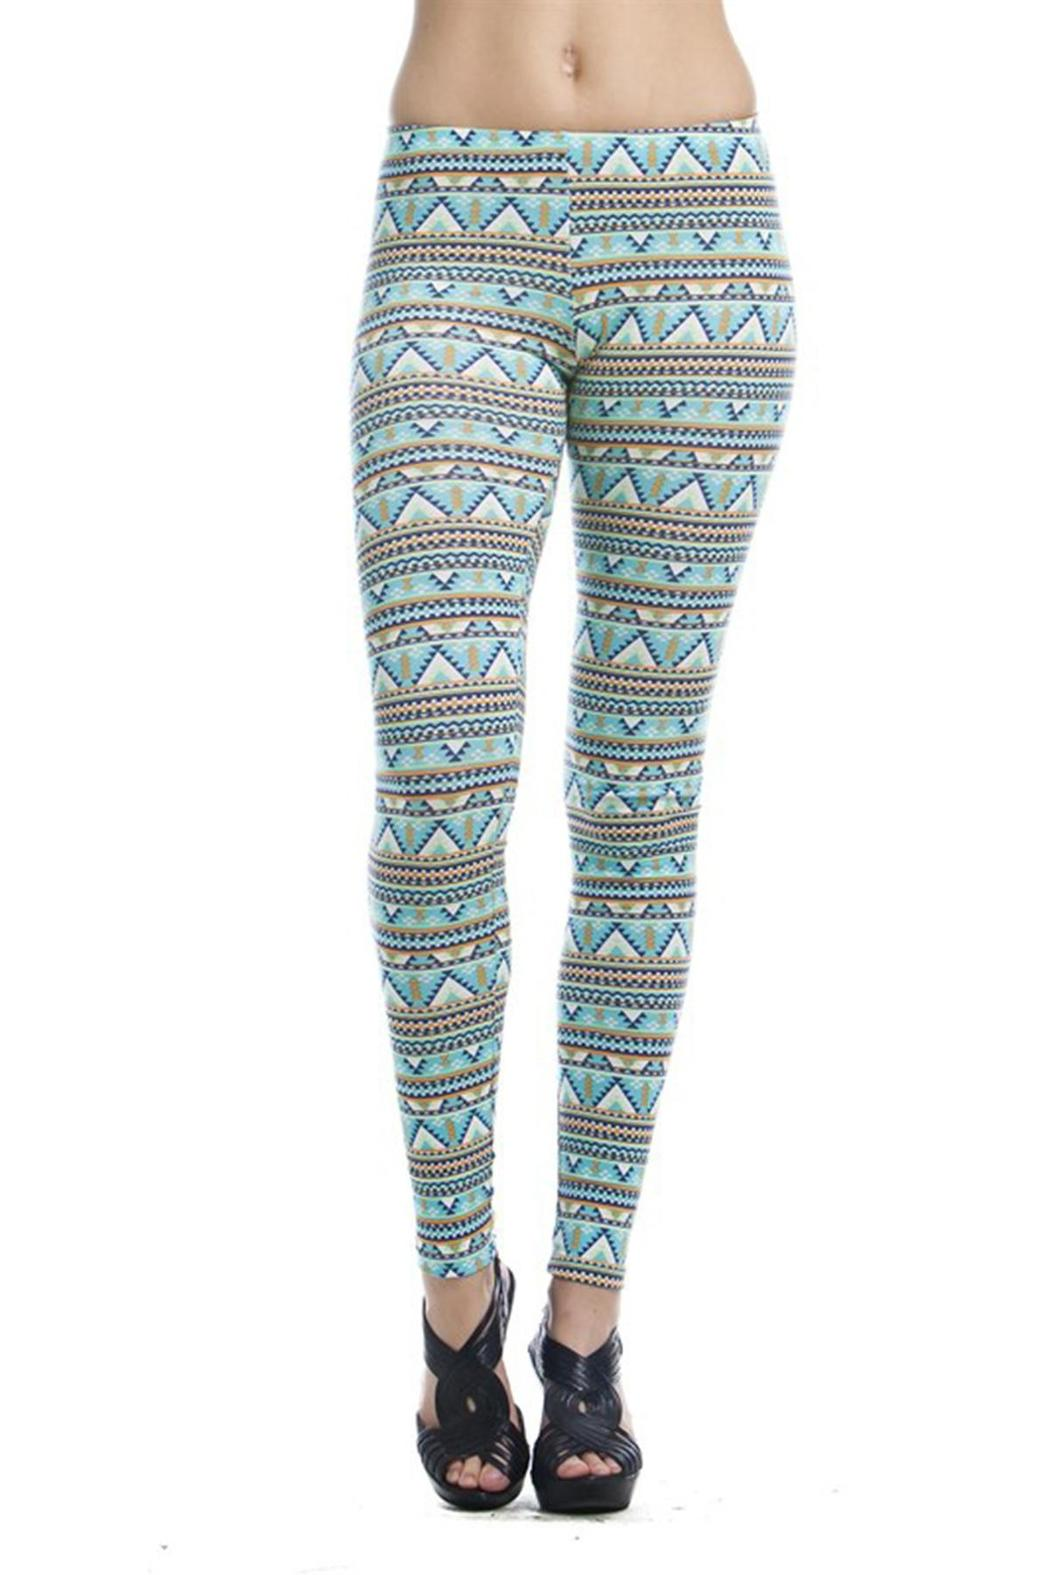 Pair an Aztec waterfall cardigan or oversized sweater, with a pair of leggings or jeggings, and riding boots. You end up with a look that is comfy, cute, and on trend. Source.